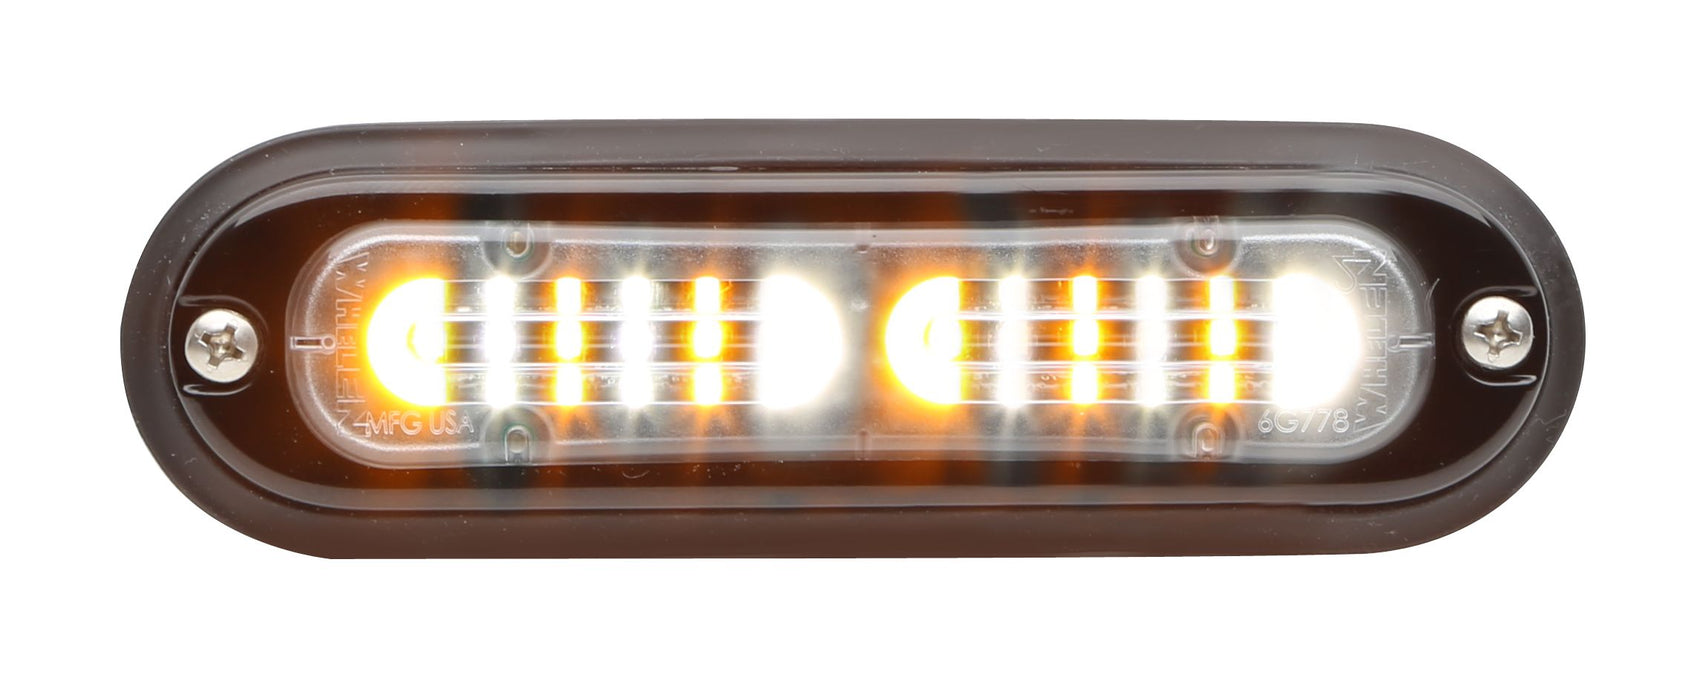 Whelen Ion T-Series Linear Duo Super LED, Amber/White- TLI2F